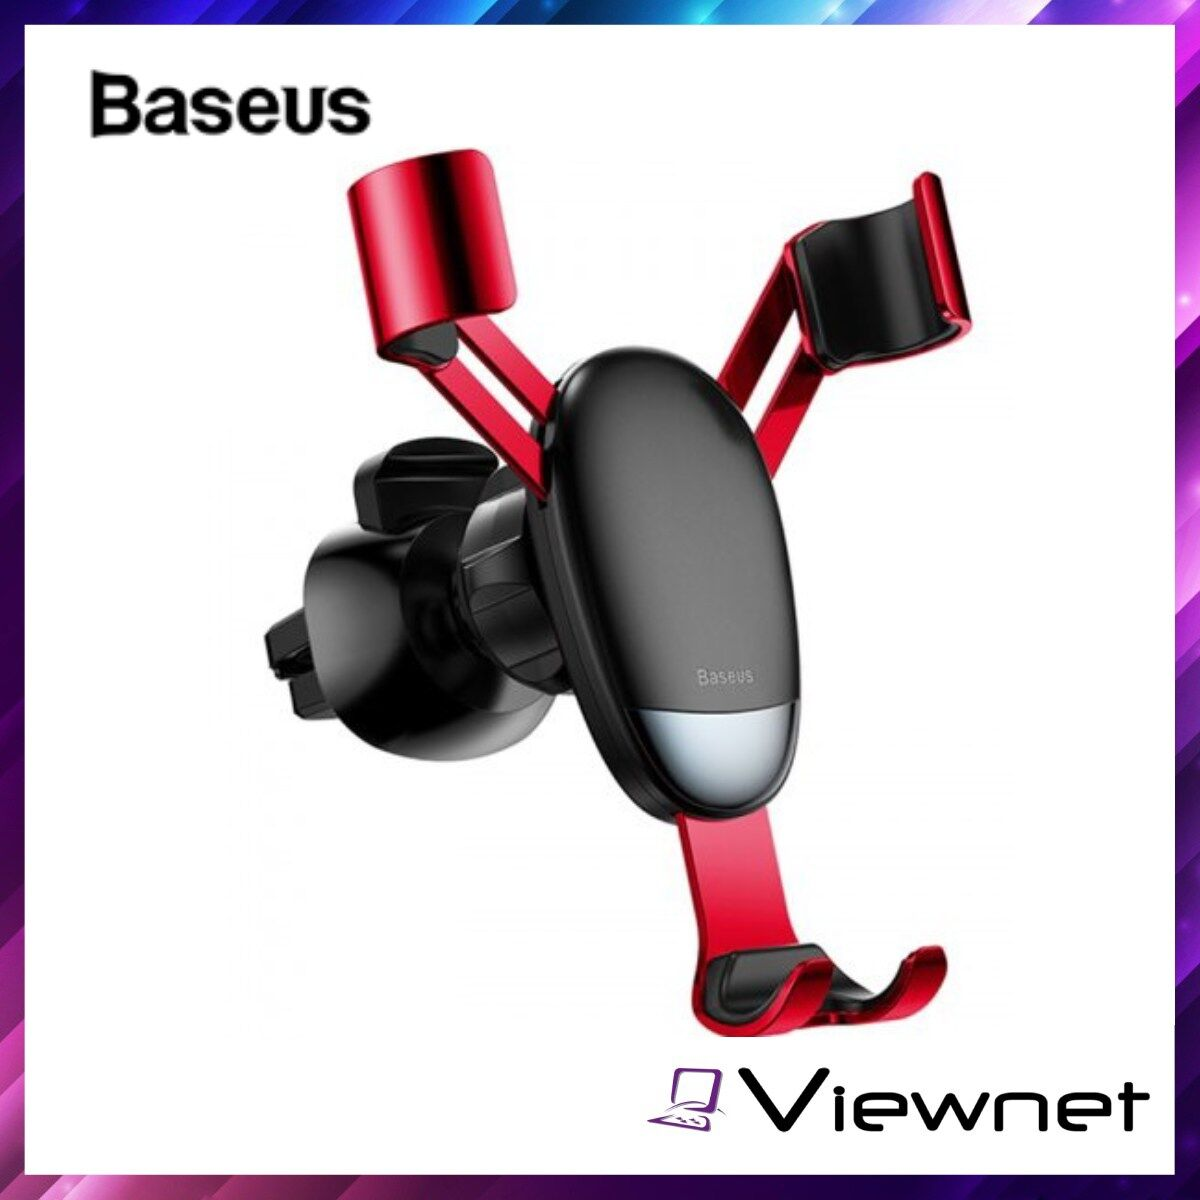 Baseus Mini Gravity Mini Car Phone Holder, Gear-Free Design, Firm and noise free, Alloy, Applicable to Various Phones, Black / Red / Silver